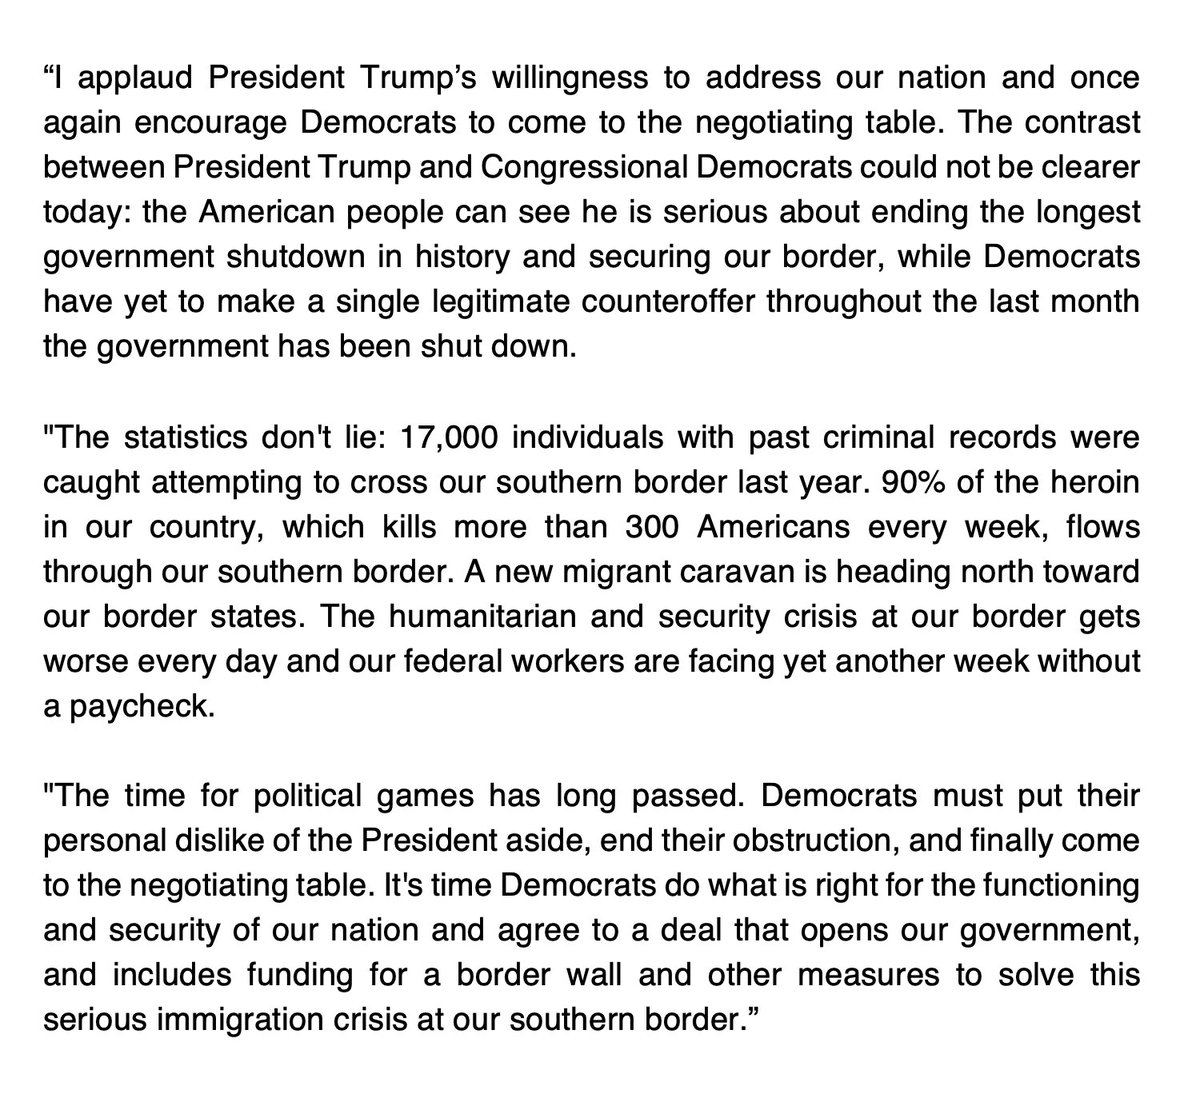 The contrast between @realDonaldTrump & Democrats could not be clearer today: people can see he's serious about ending the shutdown & securing our border, while Democrats have yet to make a single legitimate counteroffer throughout the last month the government has been shut down